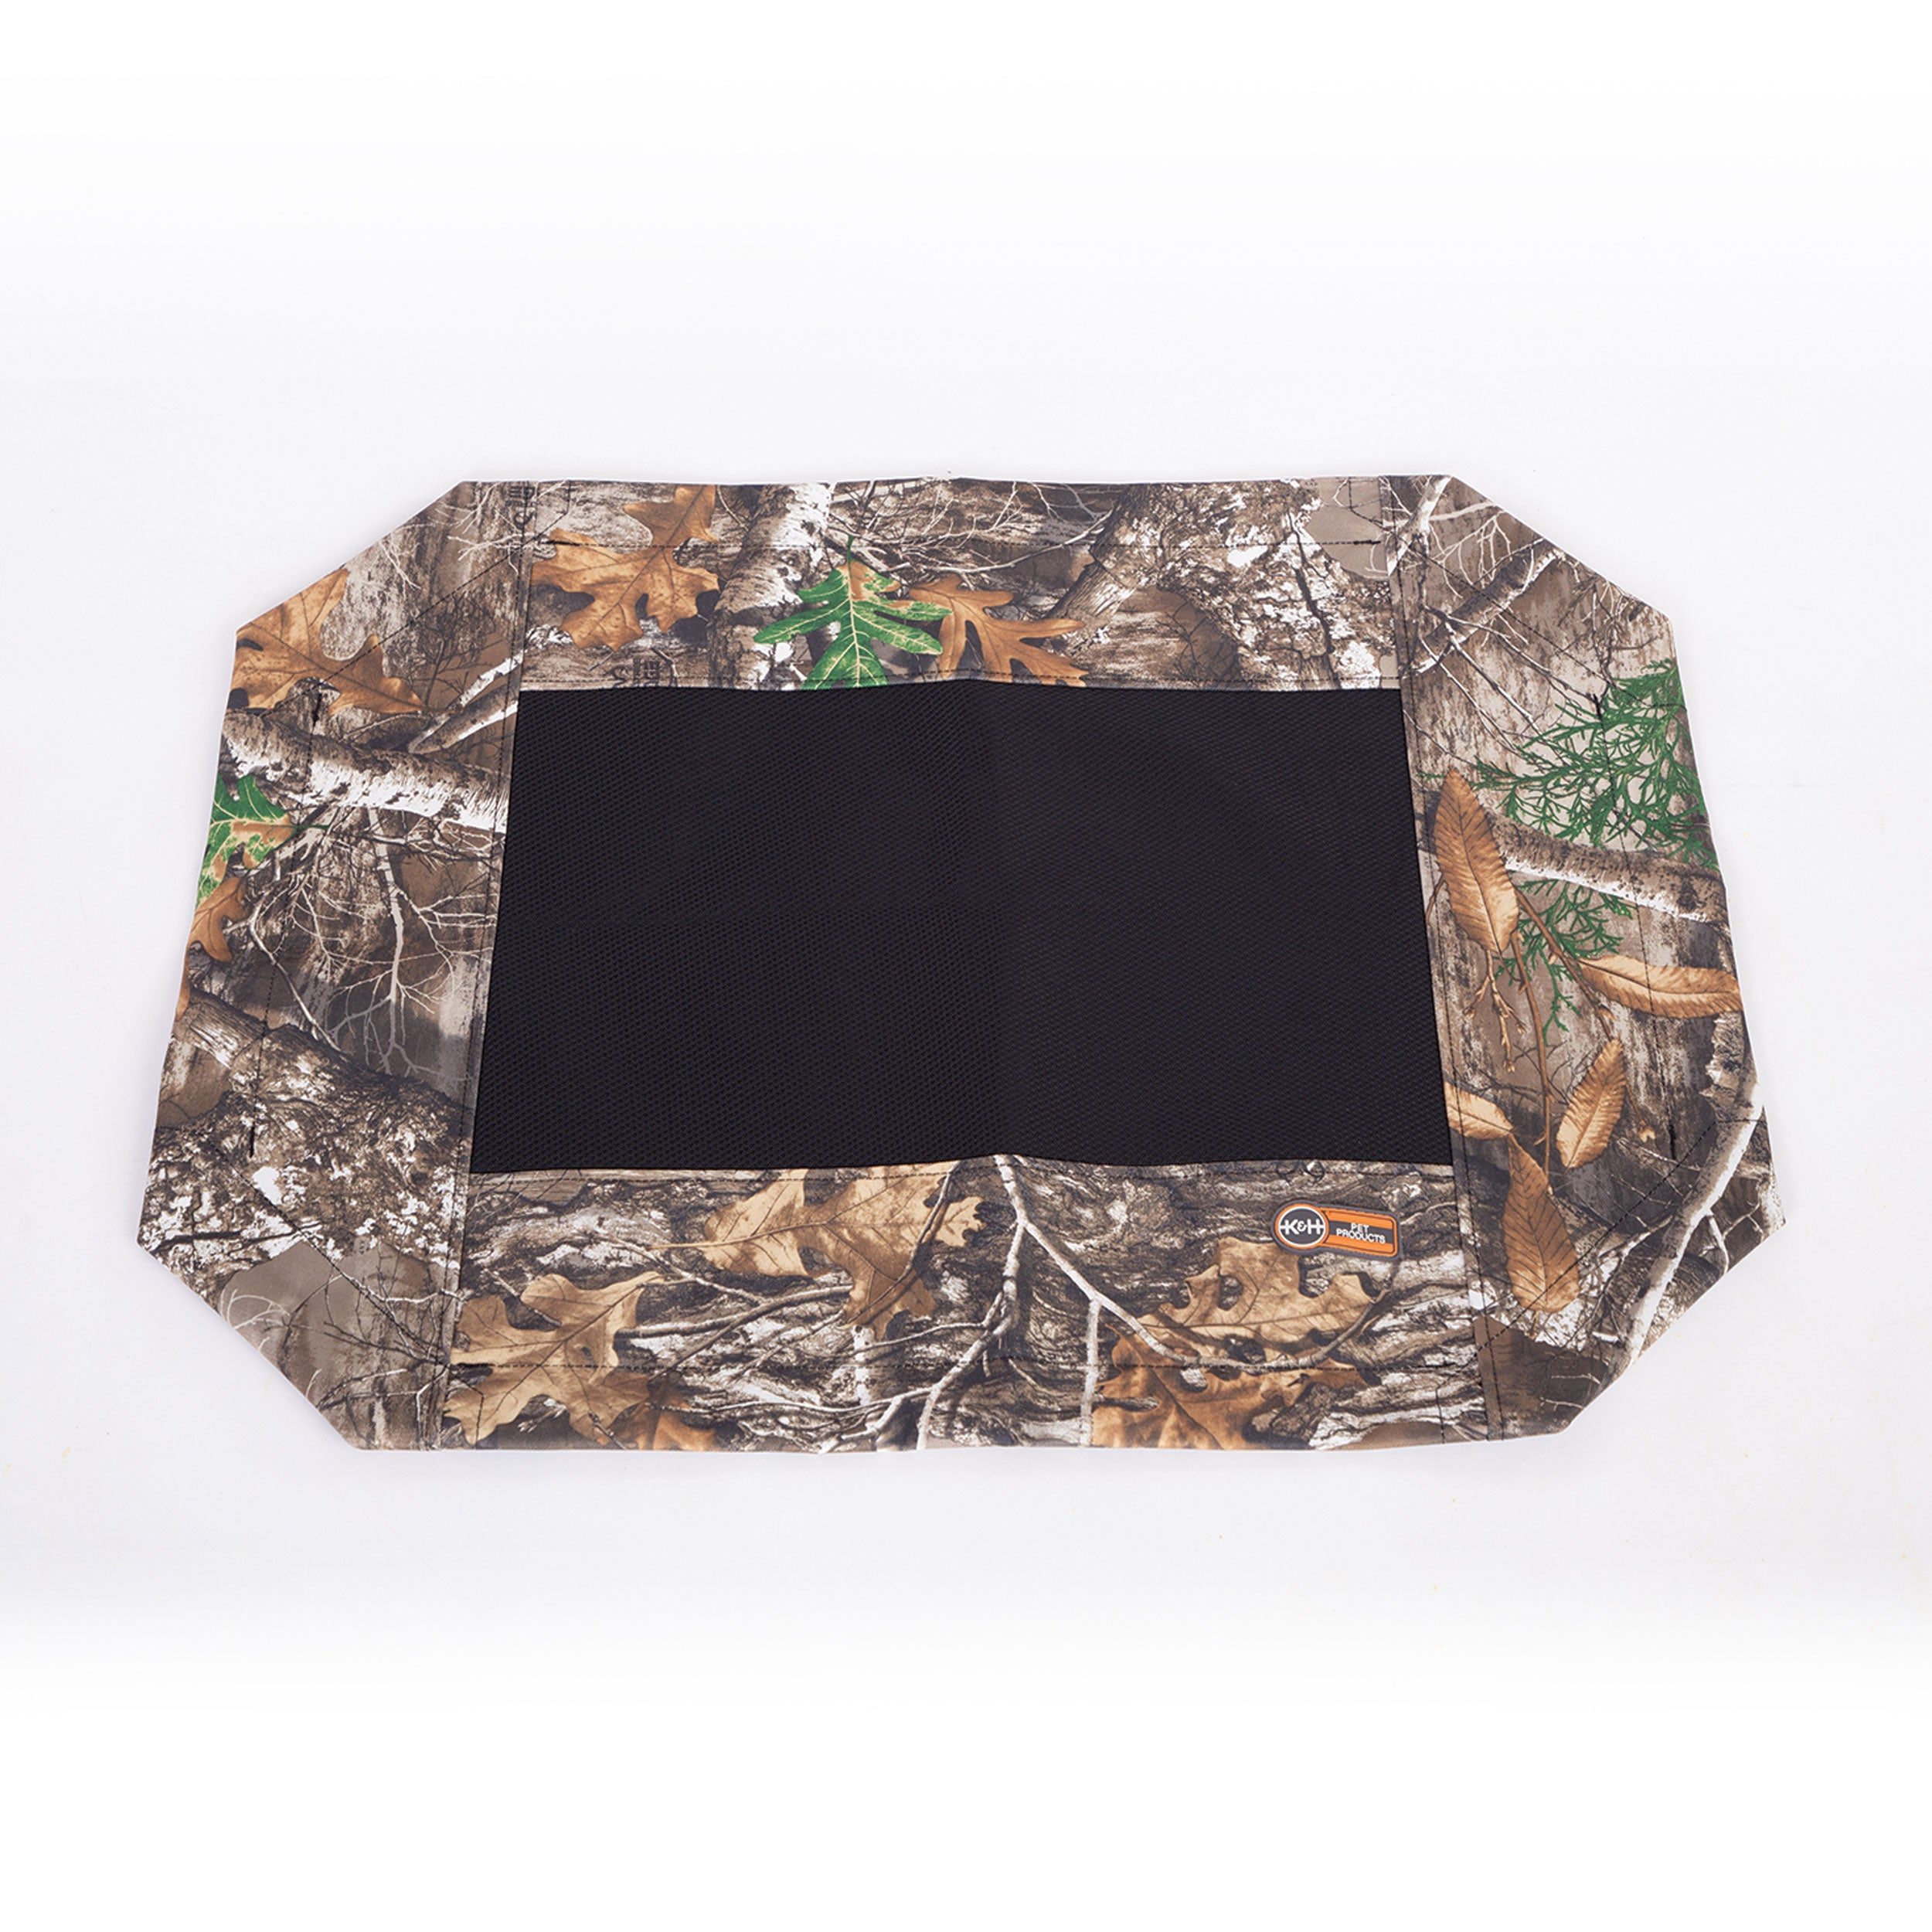 "K&H Pet Products RealTree Original Pet Cot Medium Camo 25"" x 32"" x 7"""